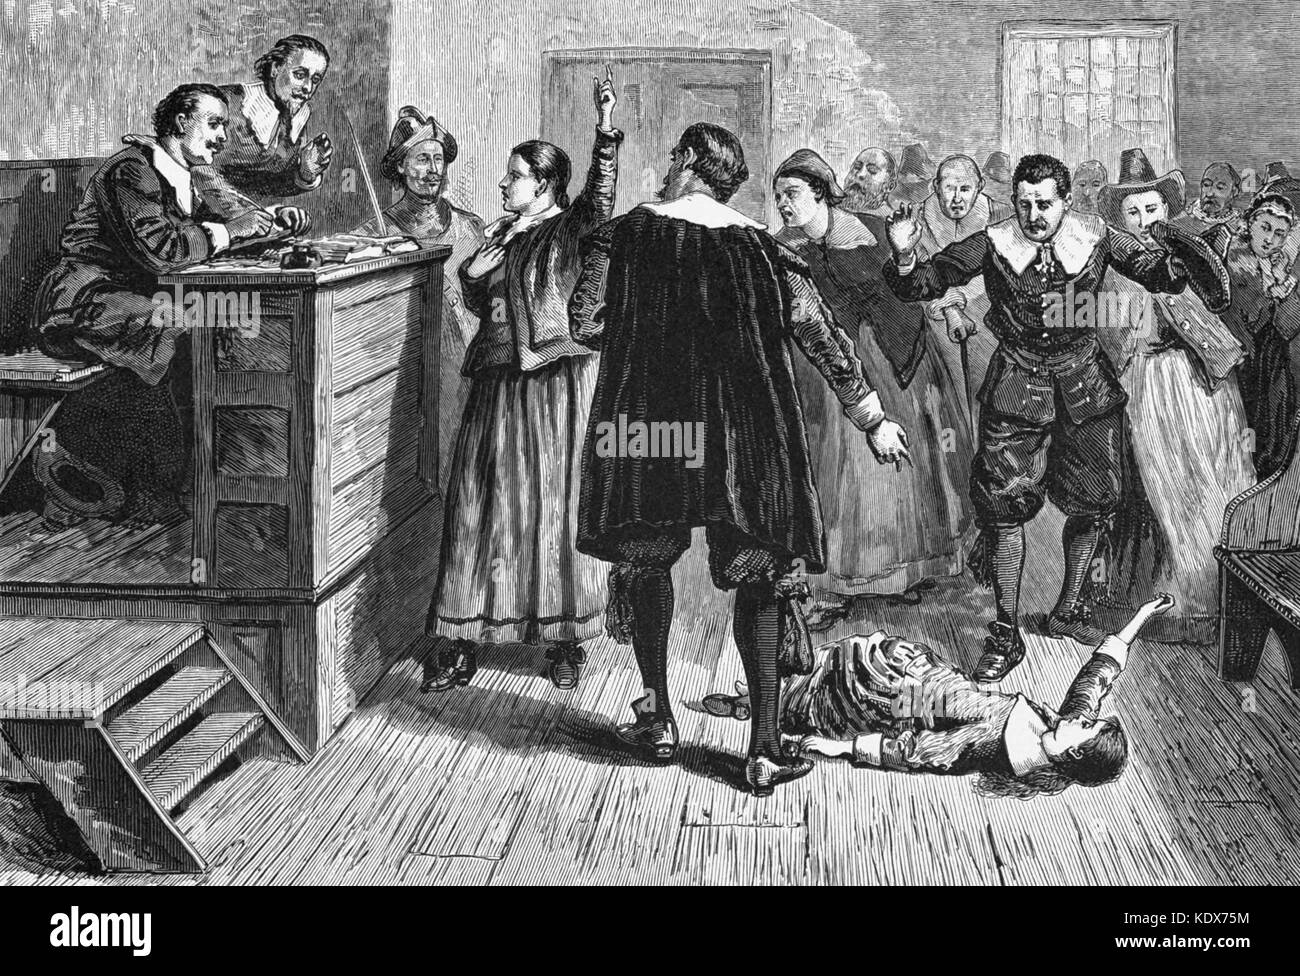 "the witch trials Accusations of witchcraft required no evidence of guilt the book hexen und hexenprozesse (witches and witch trials) states that trials were ""intended only to."